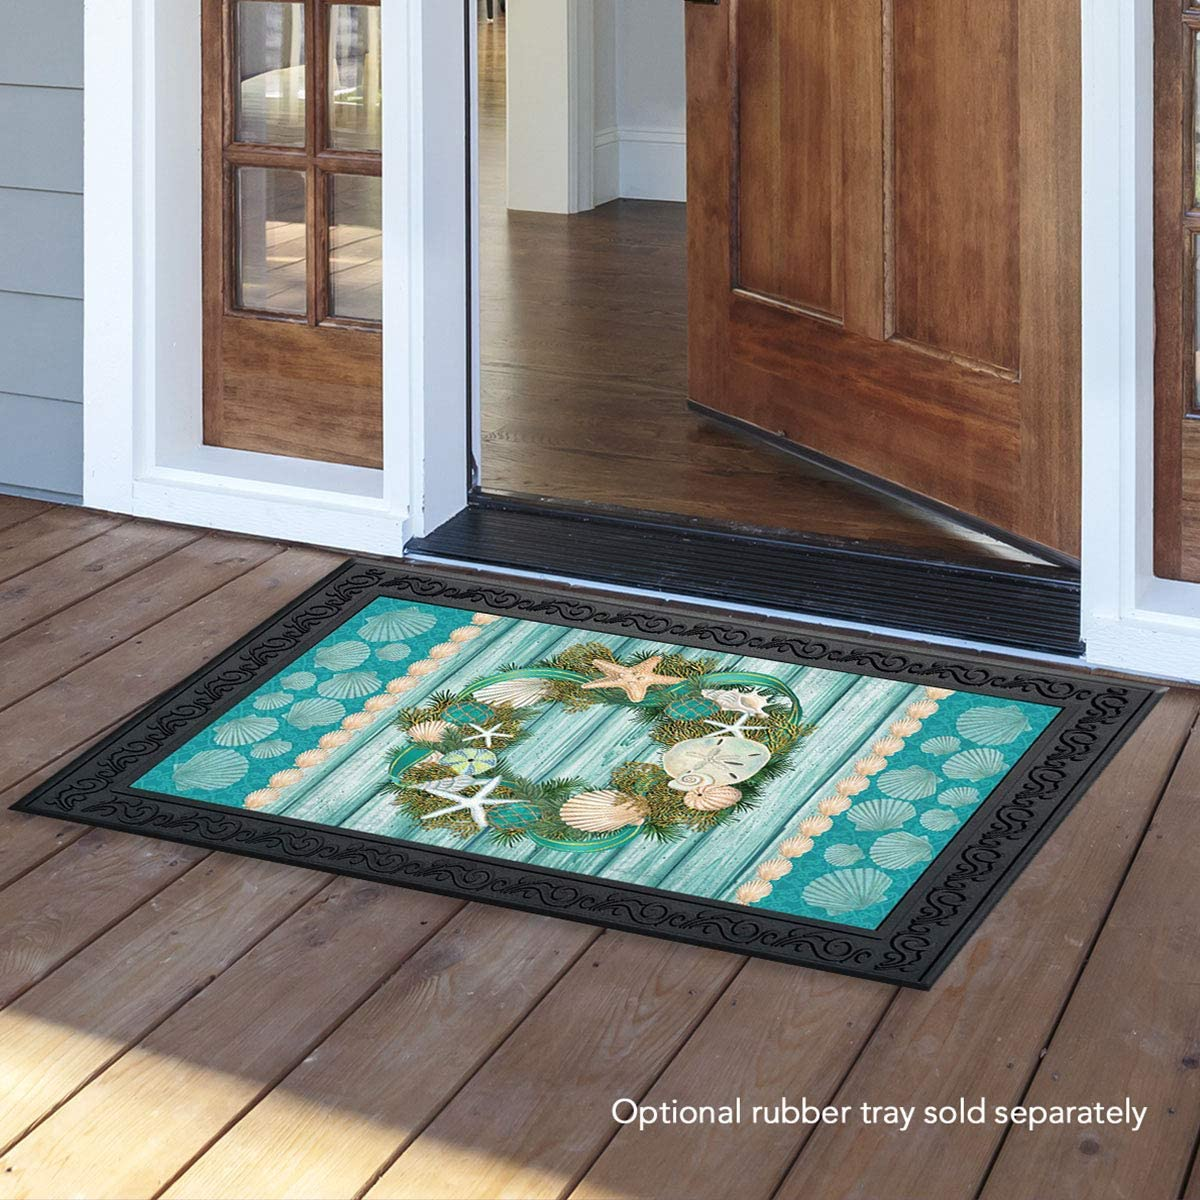 Briarwood Lane Coastal Wreath Summer Doormat Nautical Indoor Outdoor 18 x 30